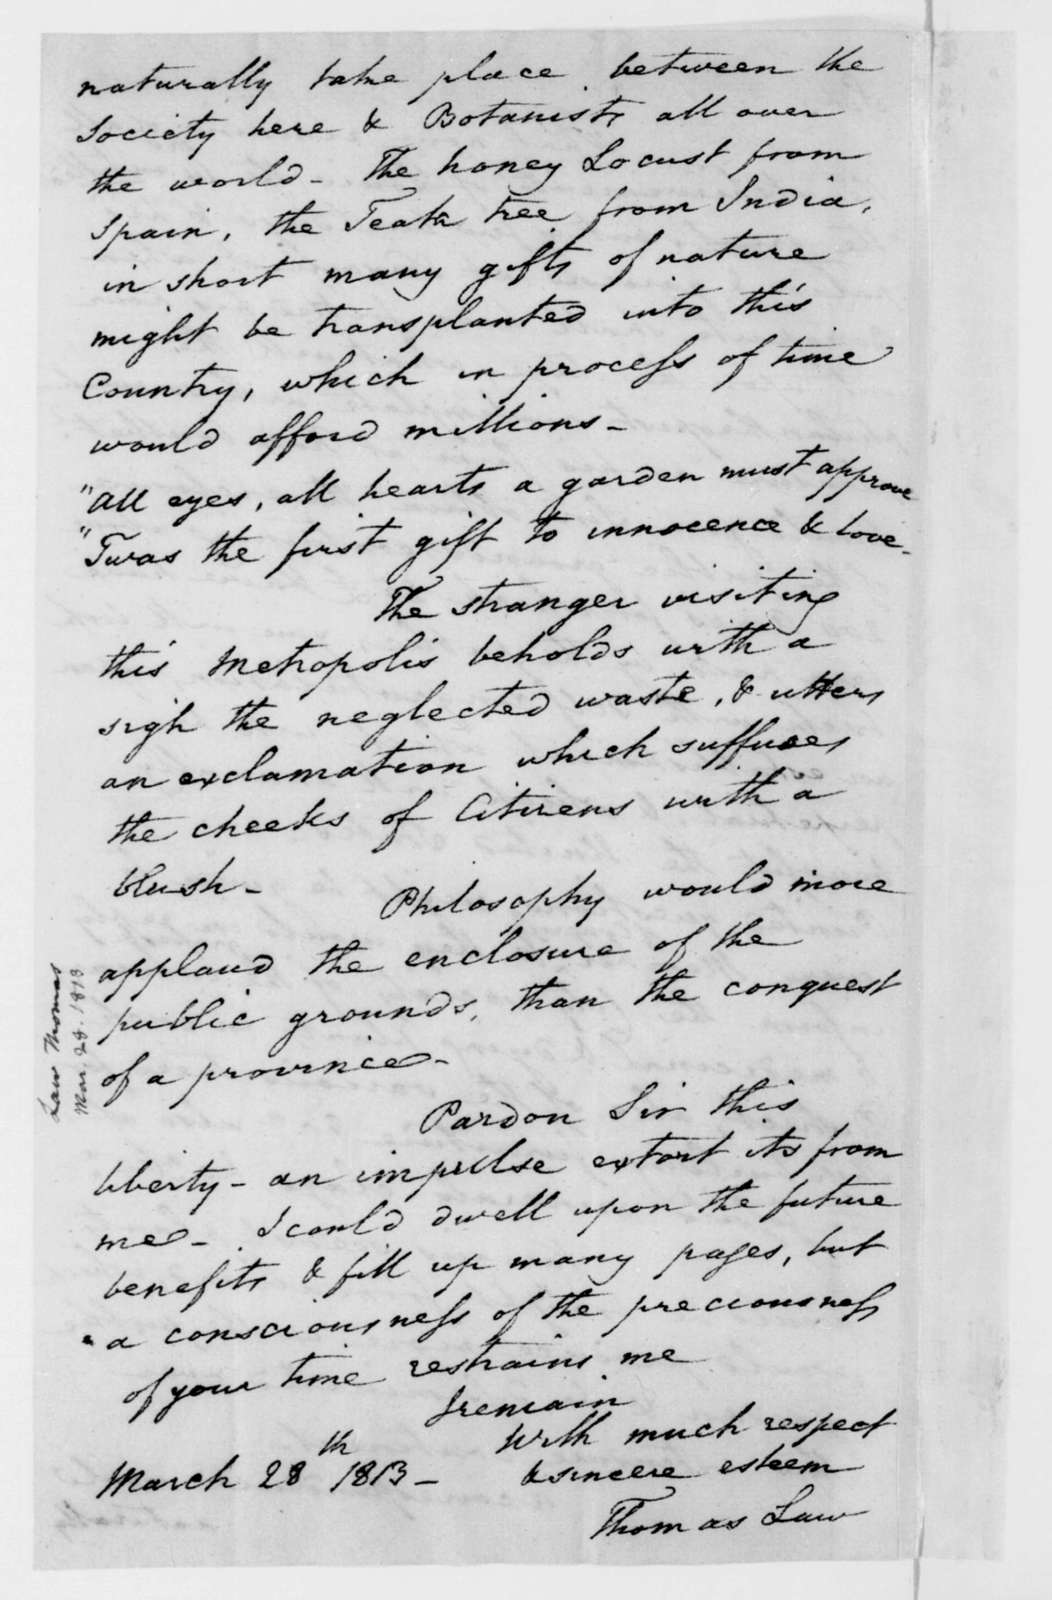 Thomas Law to James Madison, March 28, 1813.